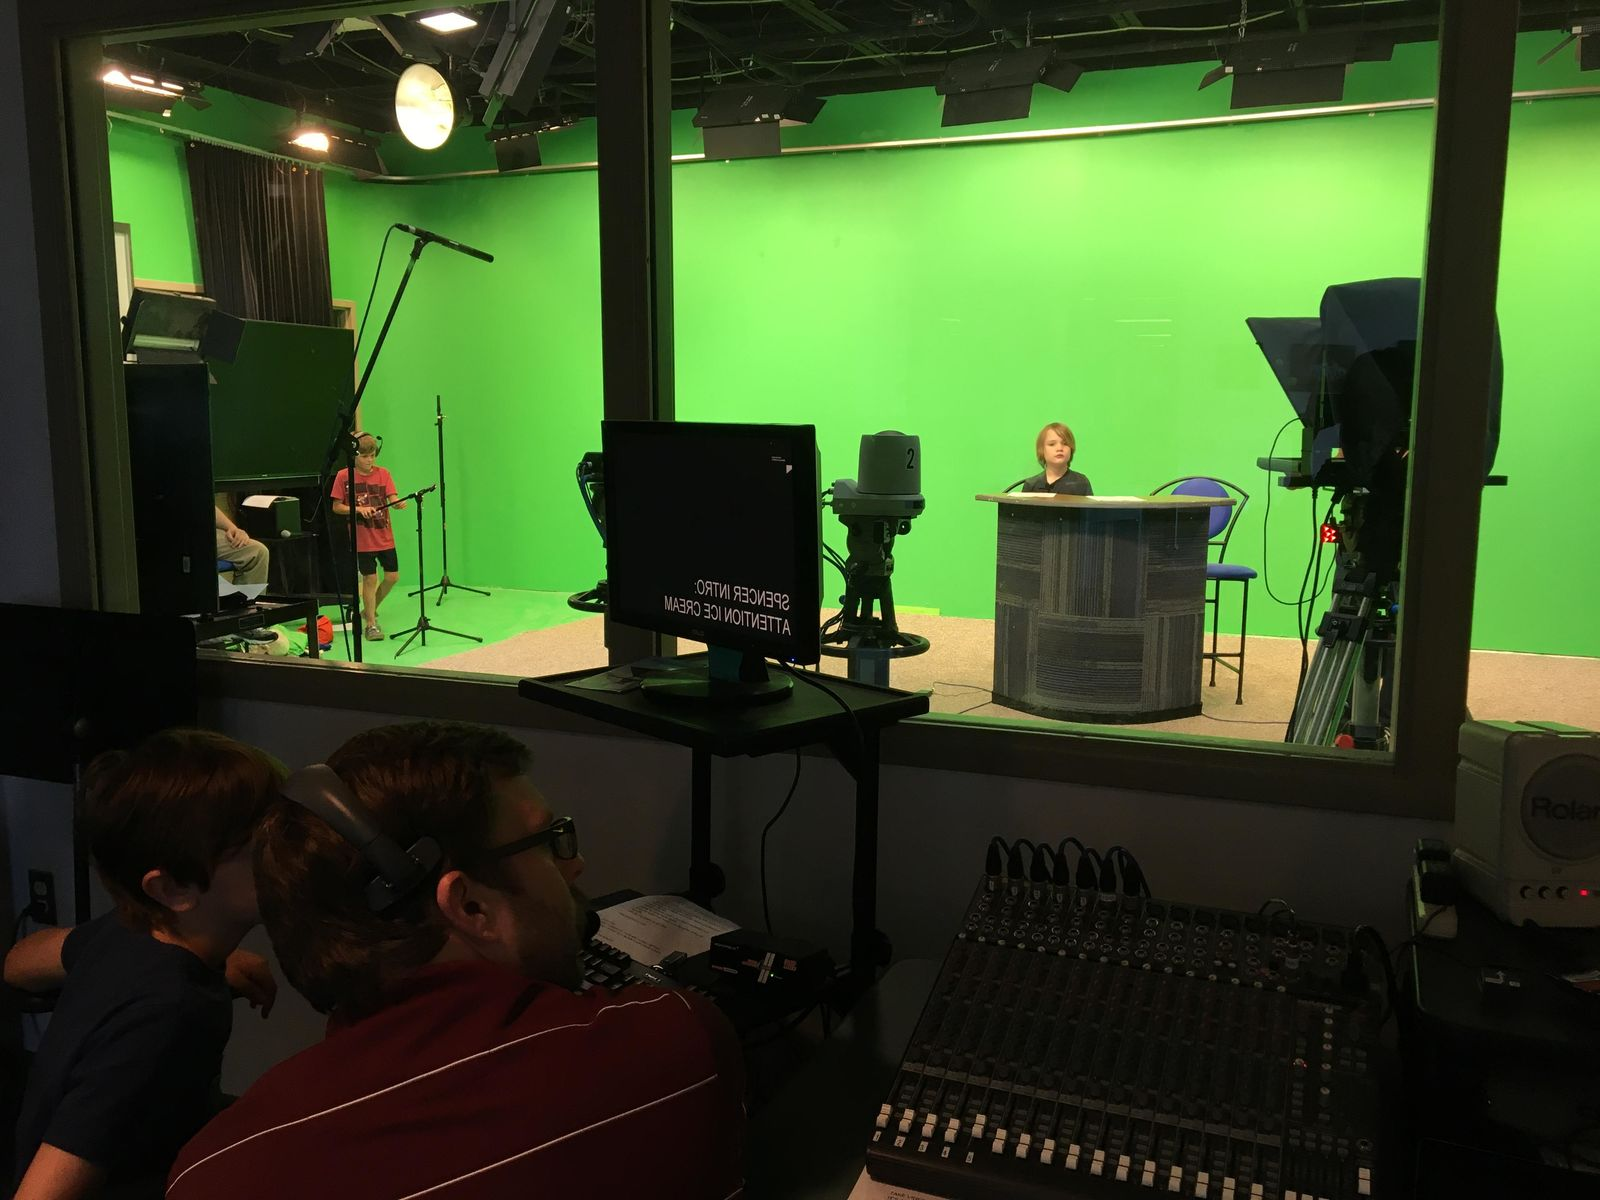 About a dozen students from Public Media Network's summer youth program learned television journalism skills from Newschannel 3's morning anchor/reporter Erica Mokay, weekend meteorologist/reporter Will Haenni, and evening anchor/reporter Lora Painter. (WWMT/Lora Painter)